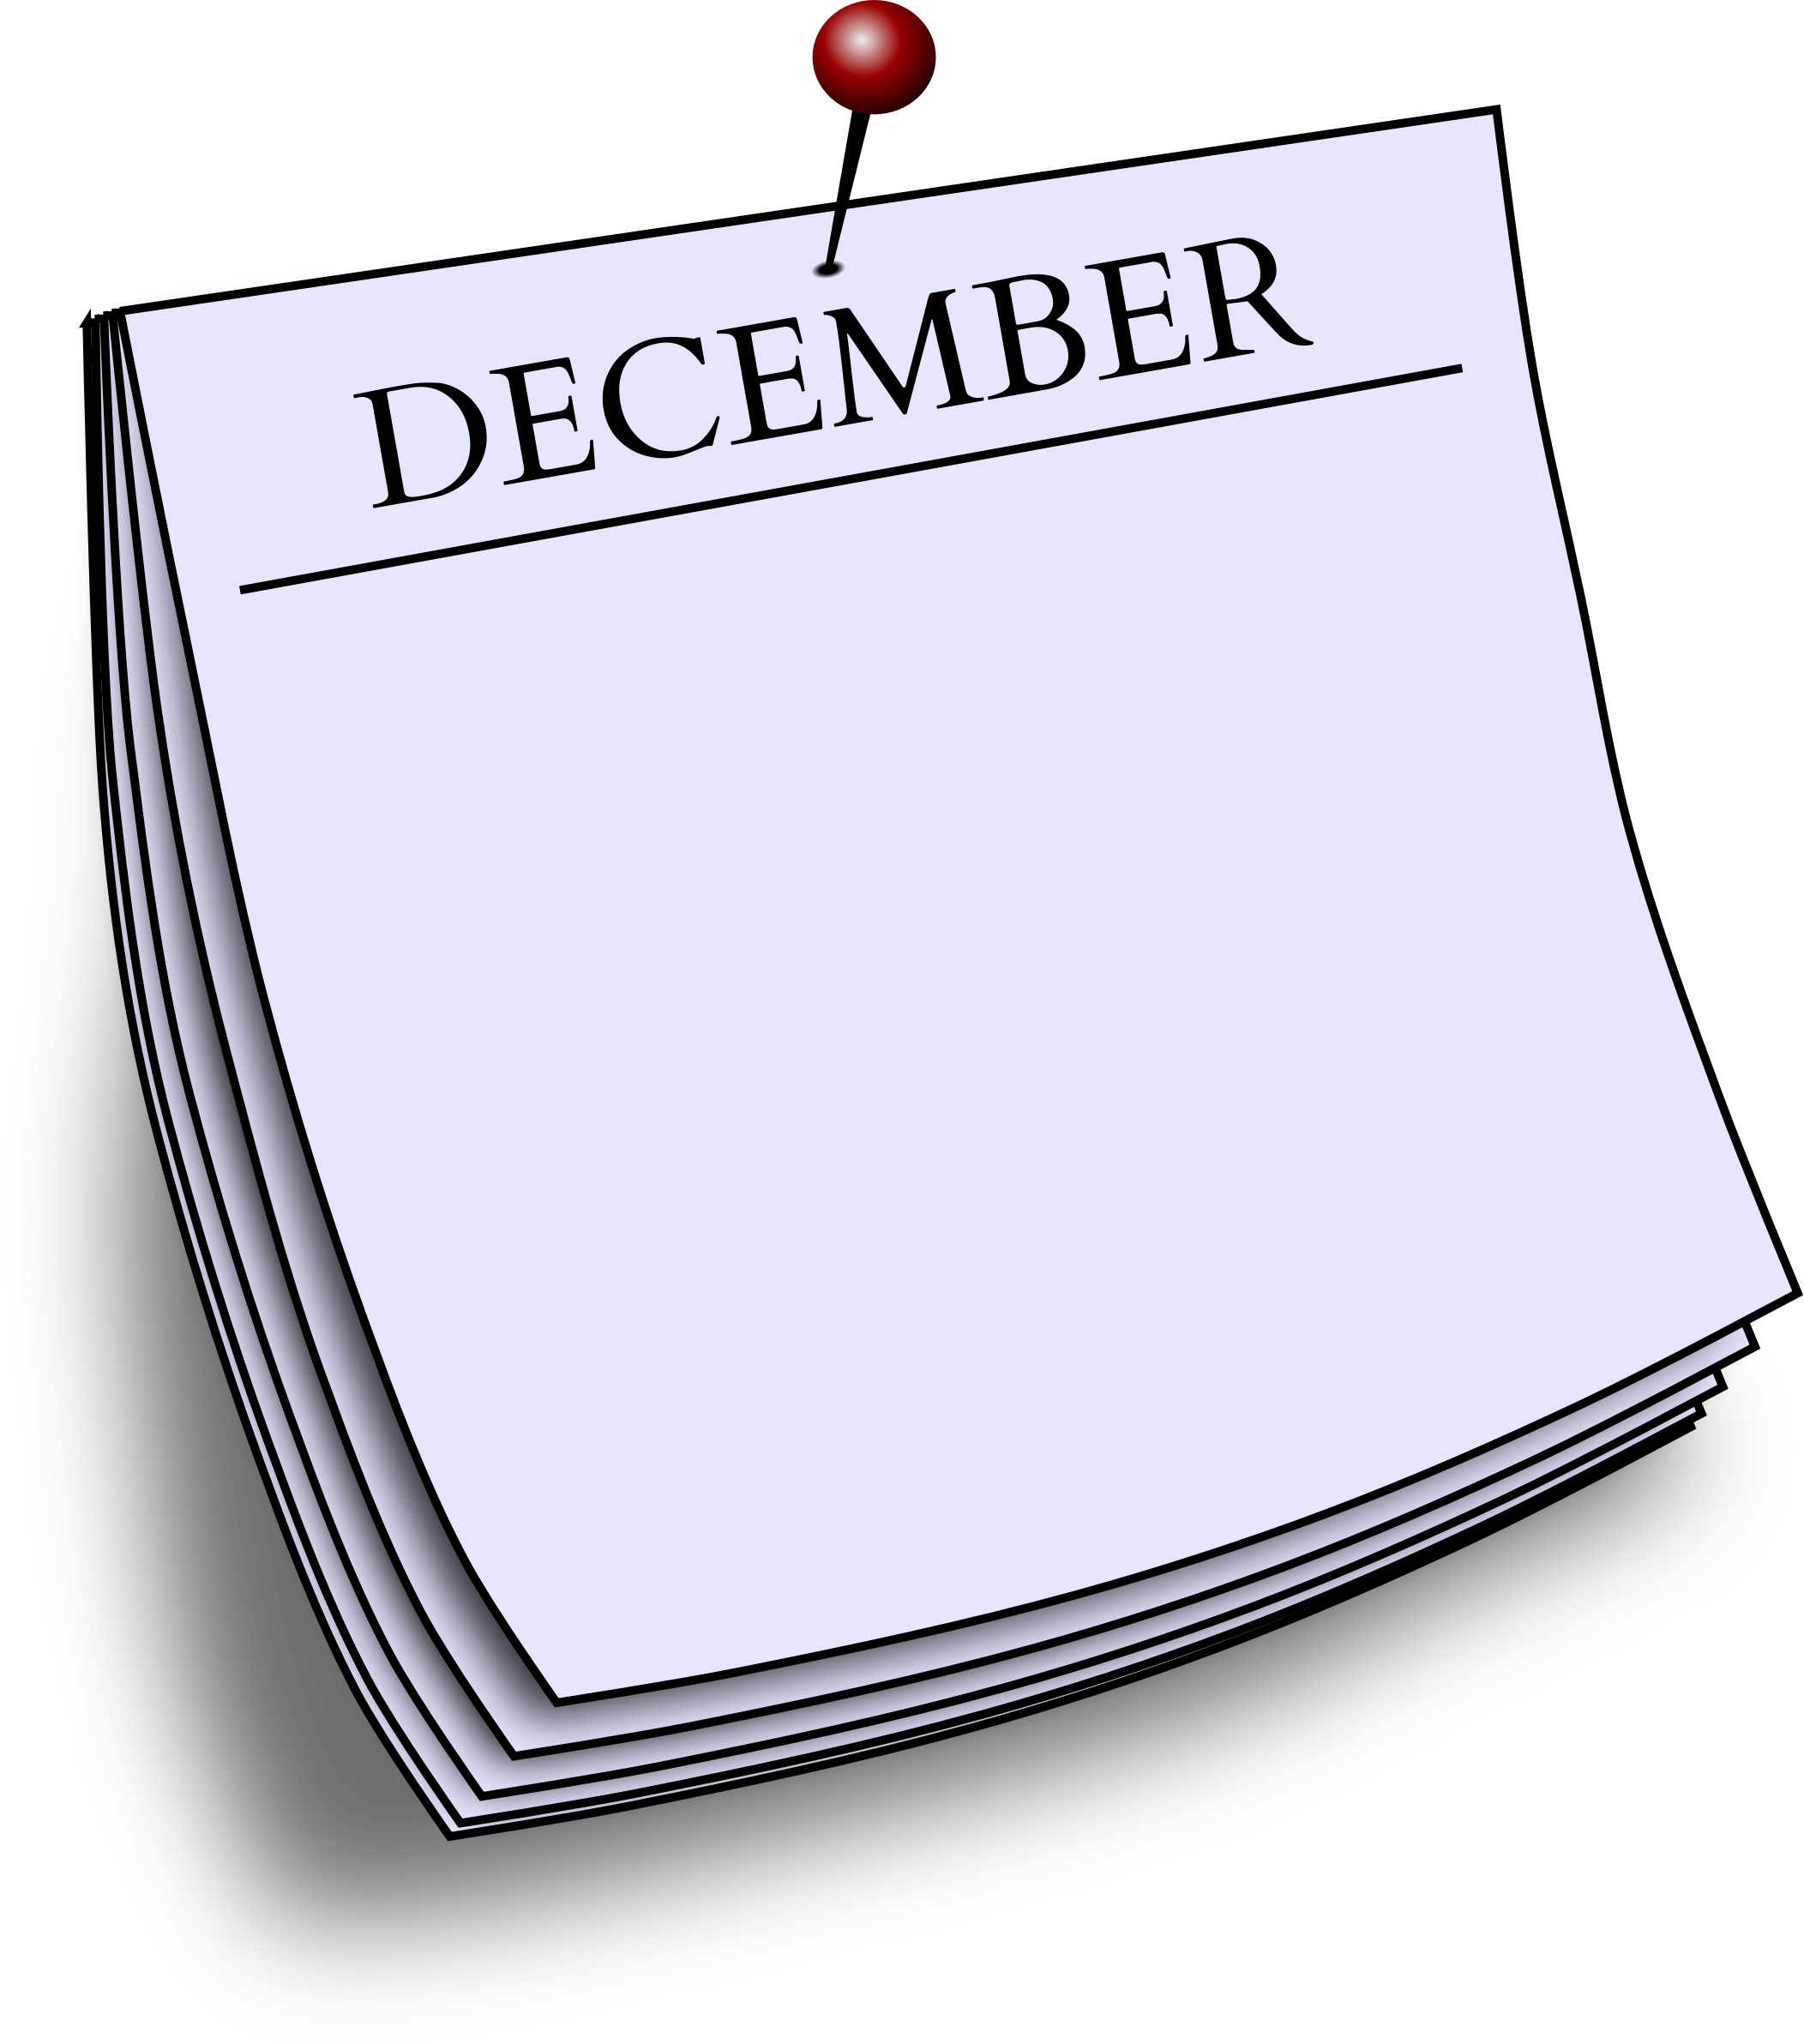 Monthly note - December by Firkin